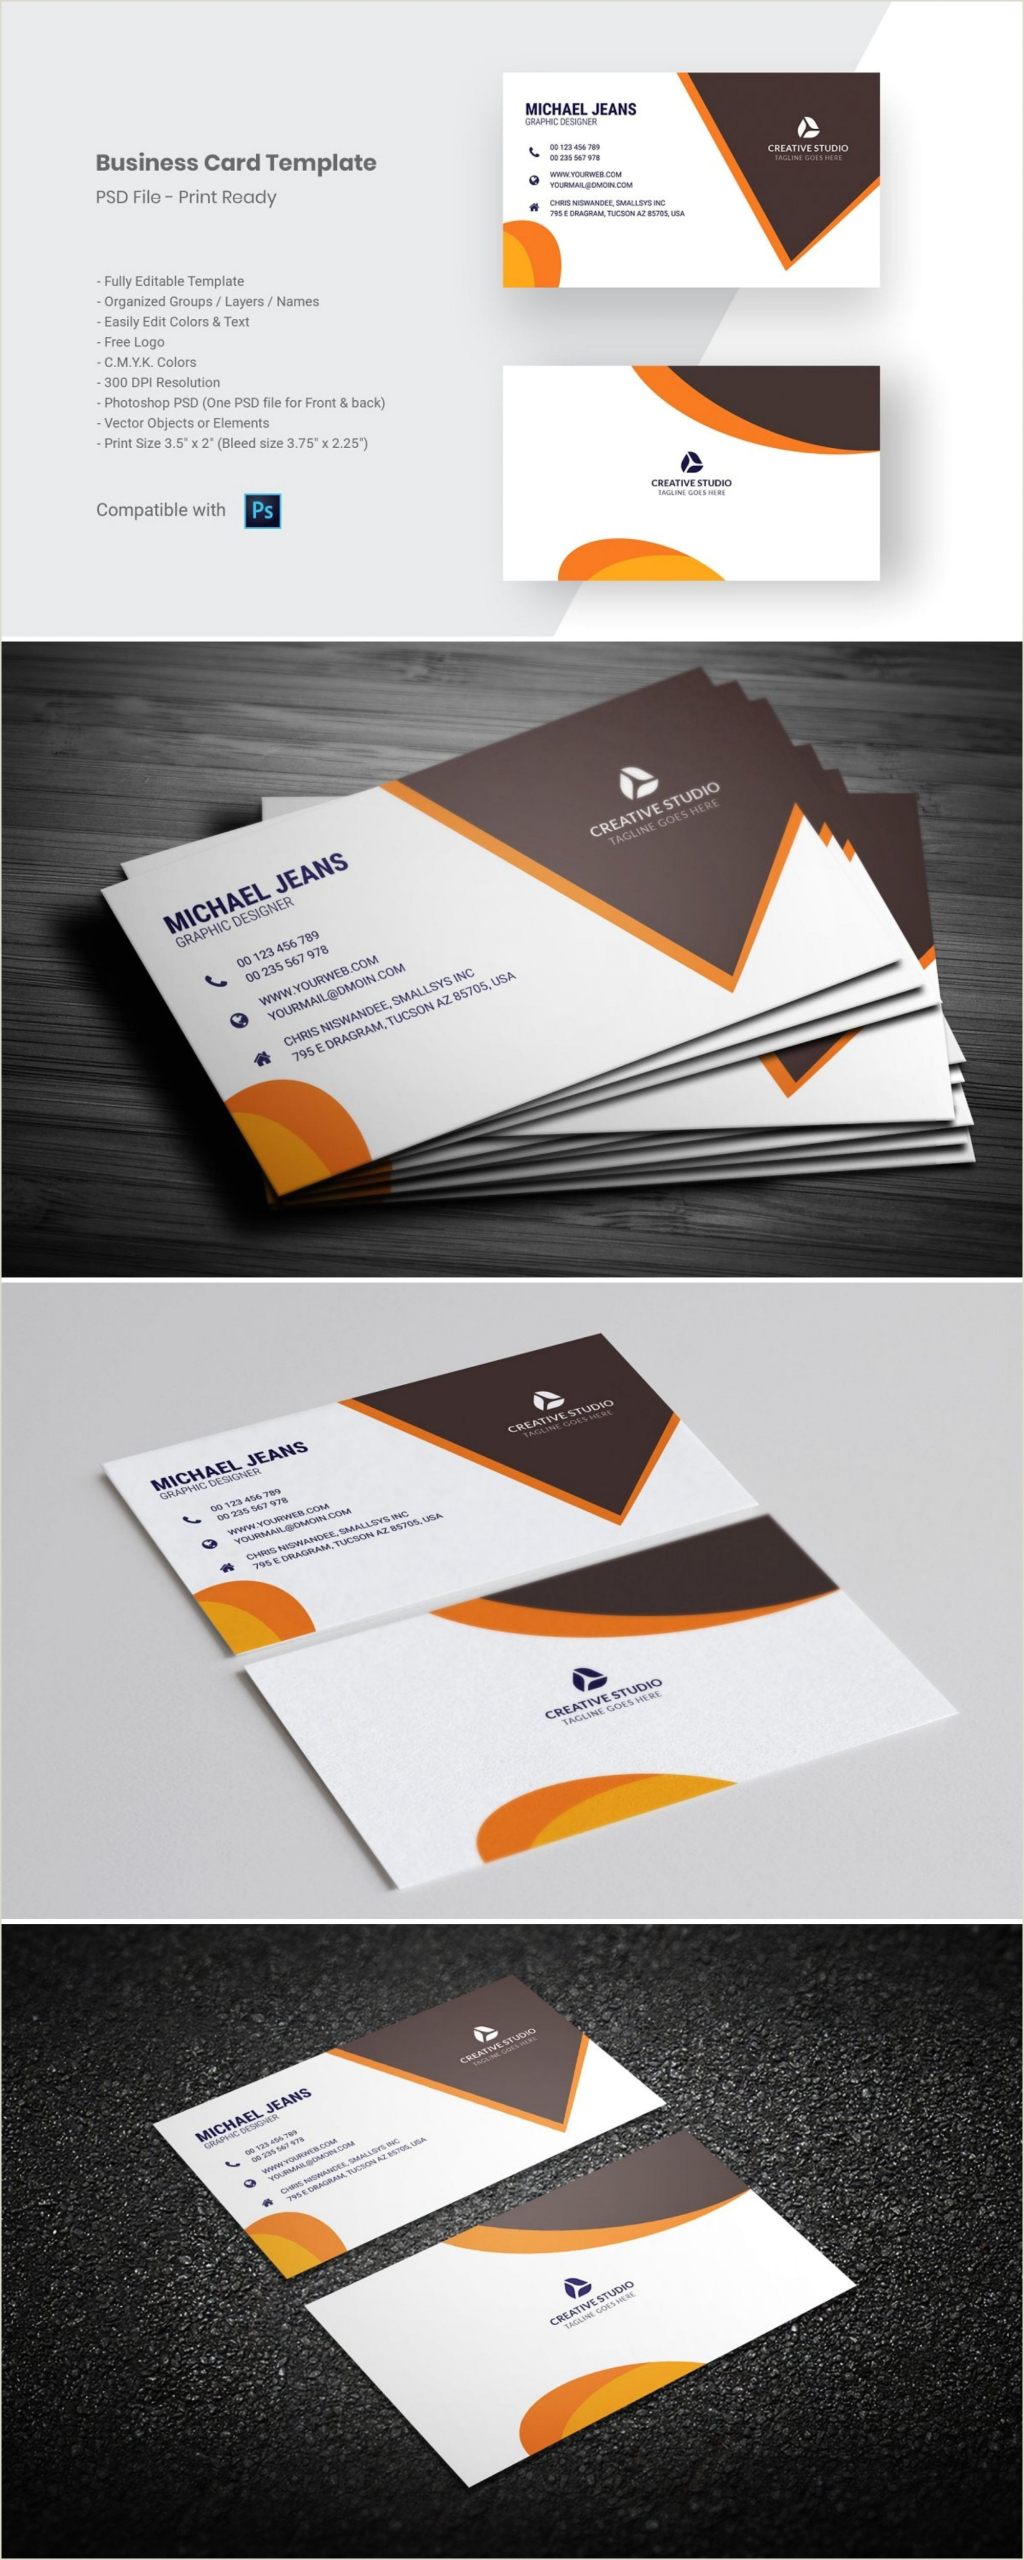 Personal Business Cards Ideas Modern Business Card Template